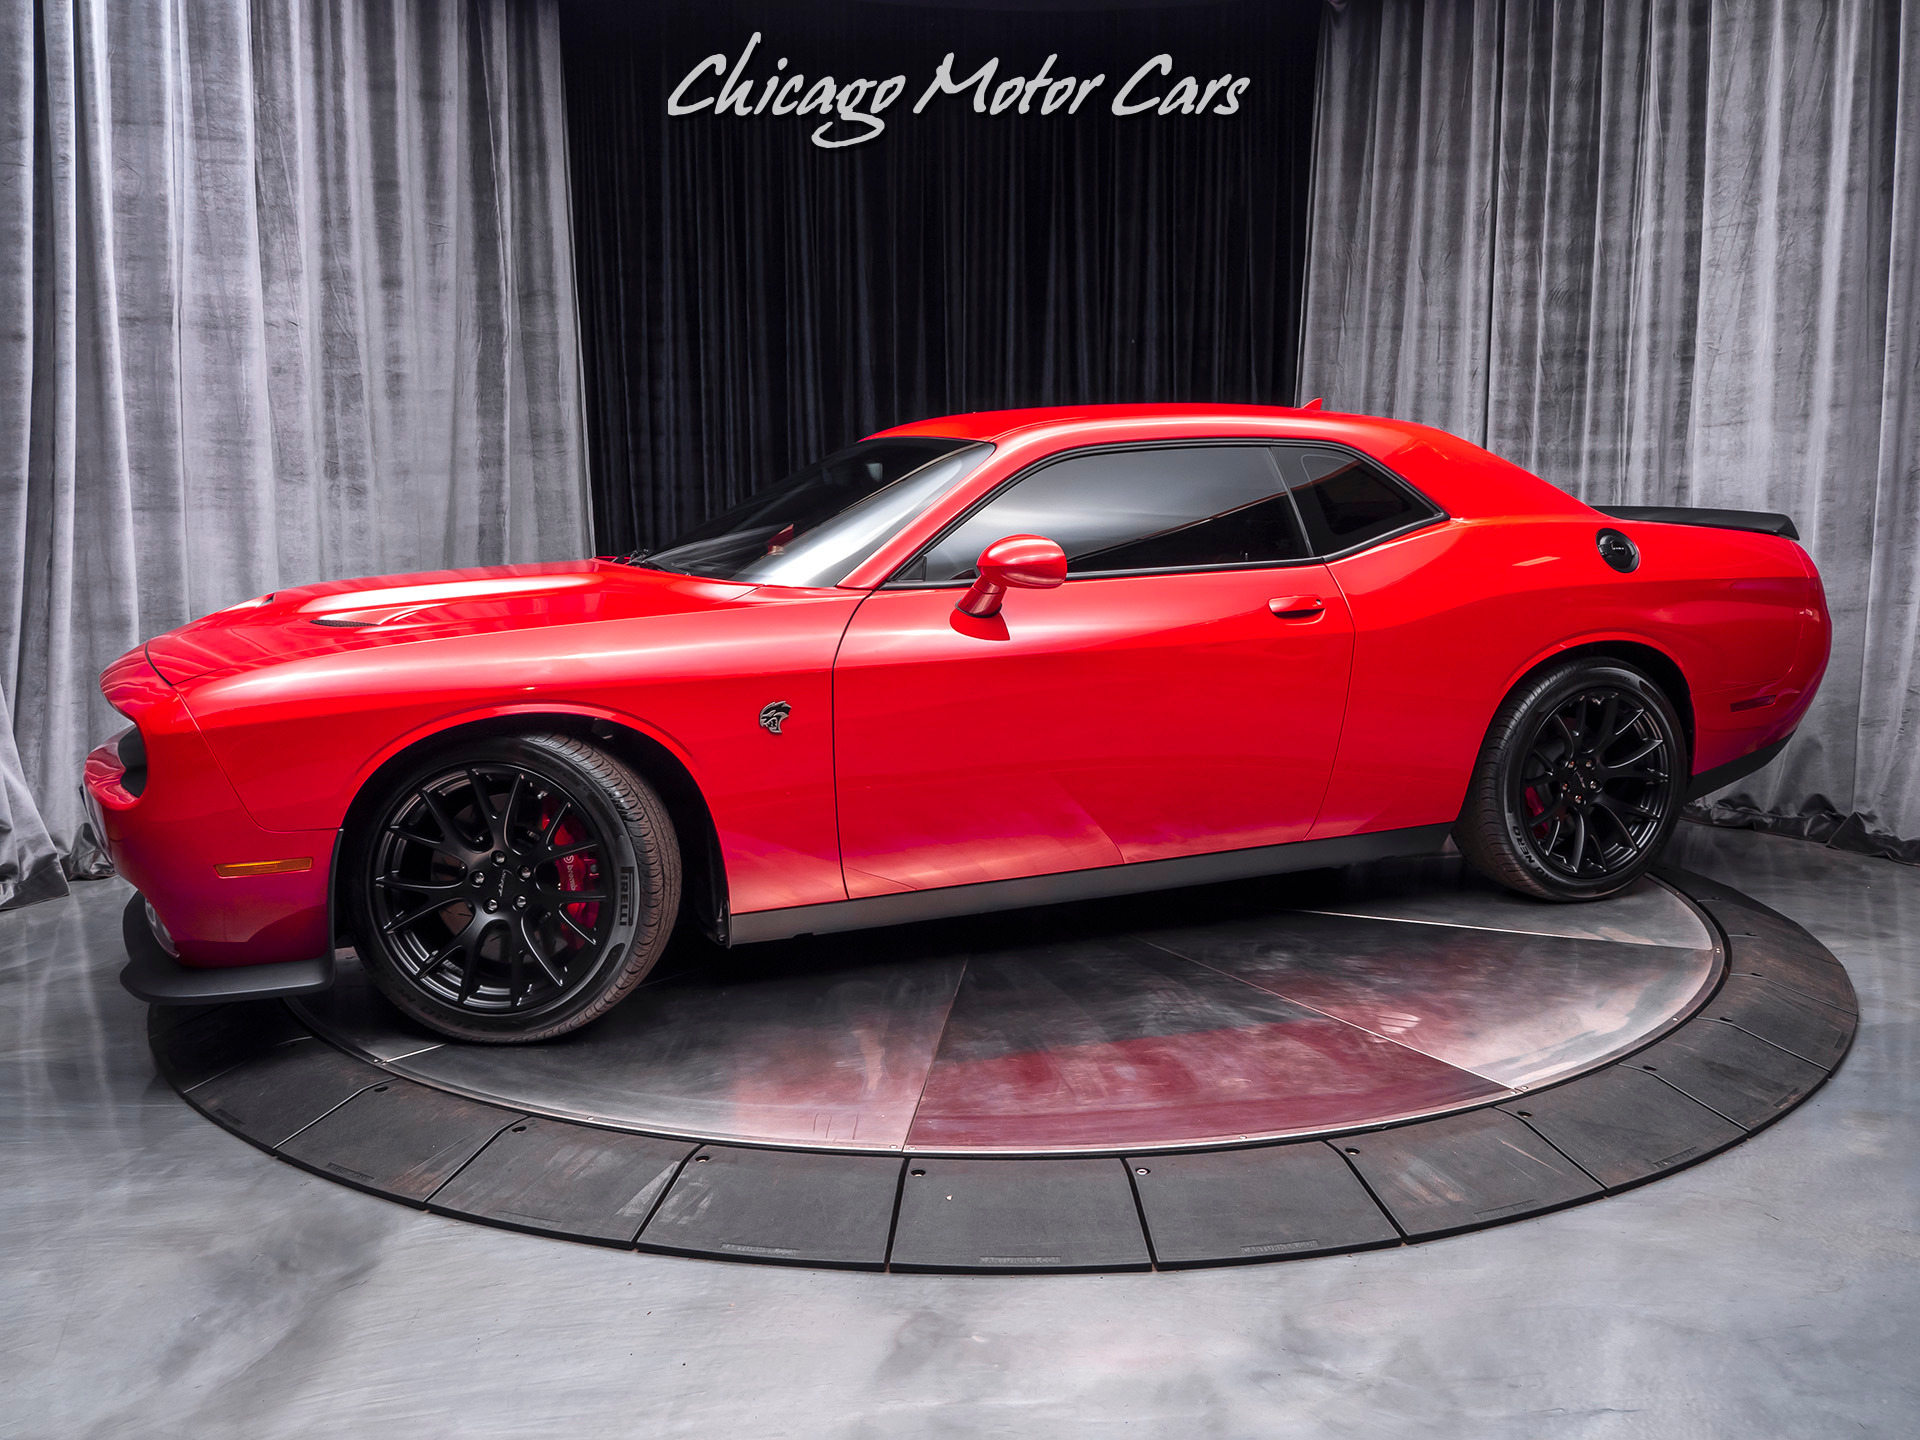 Used 2015 Dodge Challenger Srt Hellcat 6 Speed Manual For Sale Special Pricing Chicago Motor Cars Stock 15934